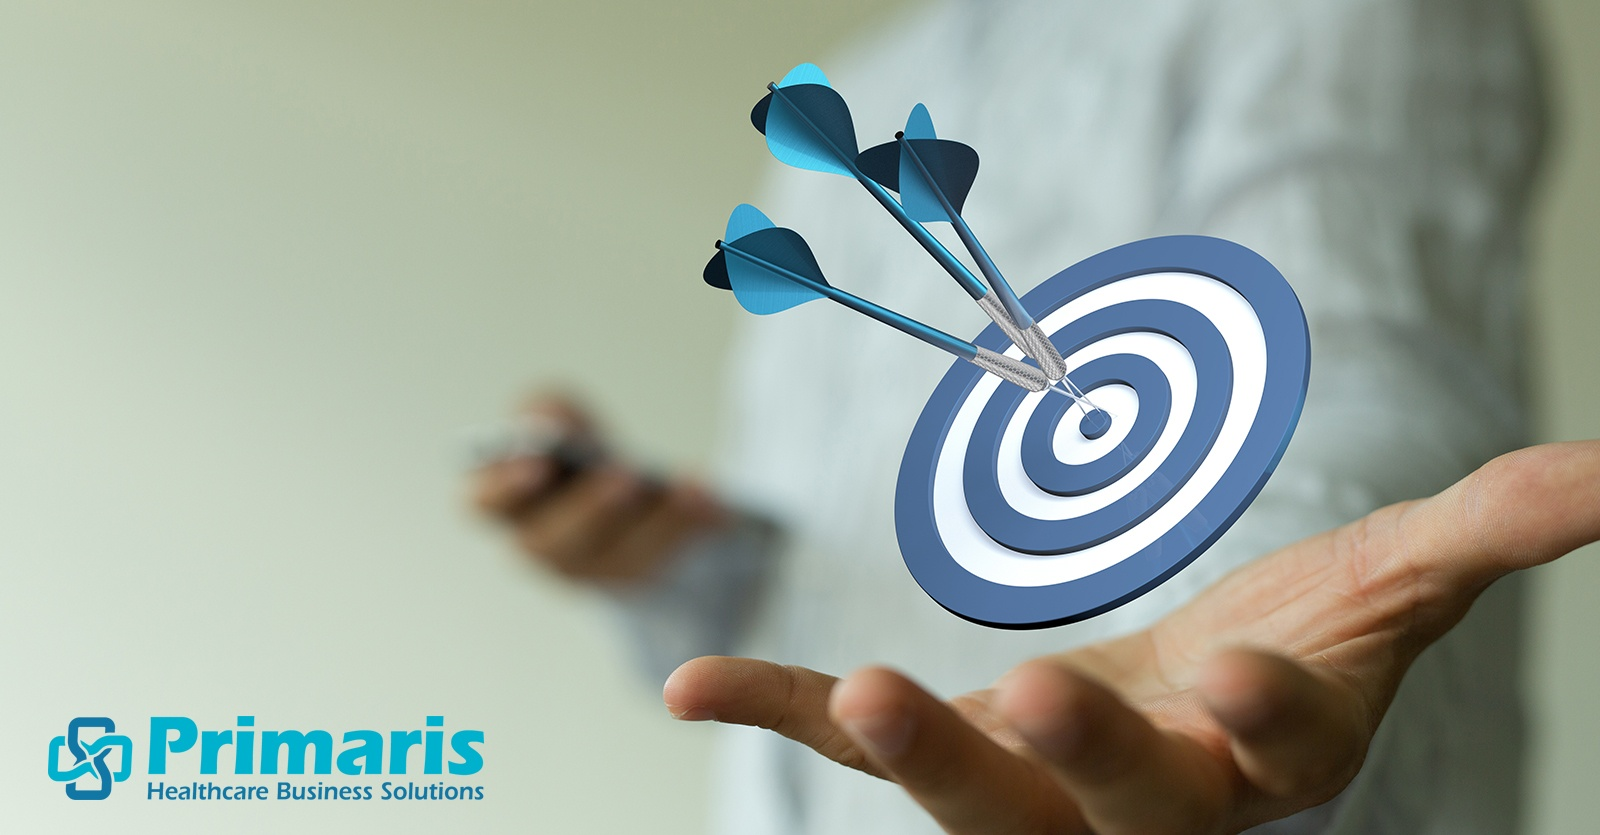 Three darts hit the bull's-eye, illustrating the Triple Aim of healthcare quality improvement: better patient outcomes, better population health, lower cost. Core measures help achieve all three.